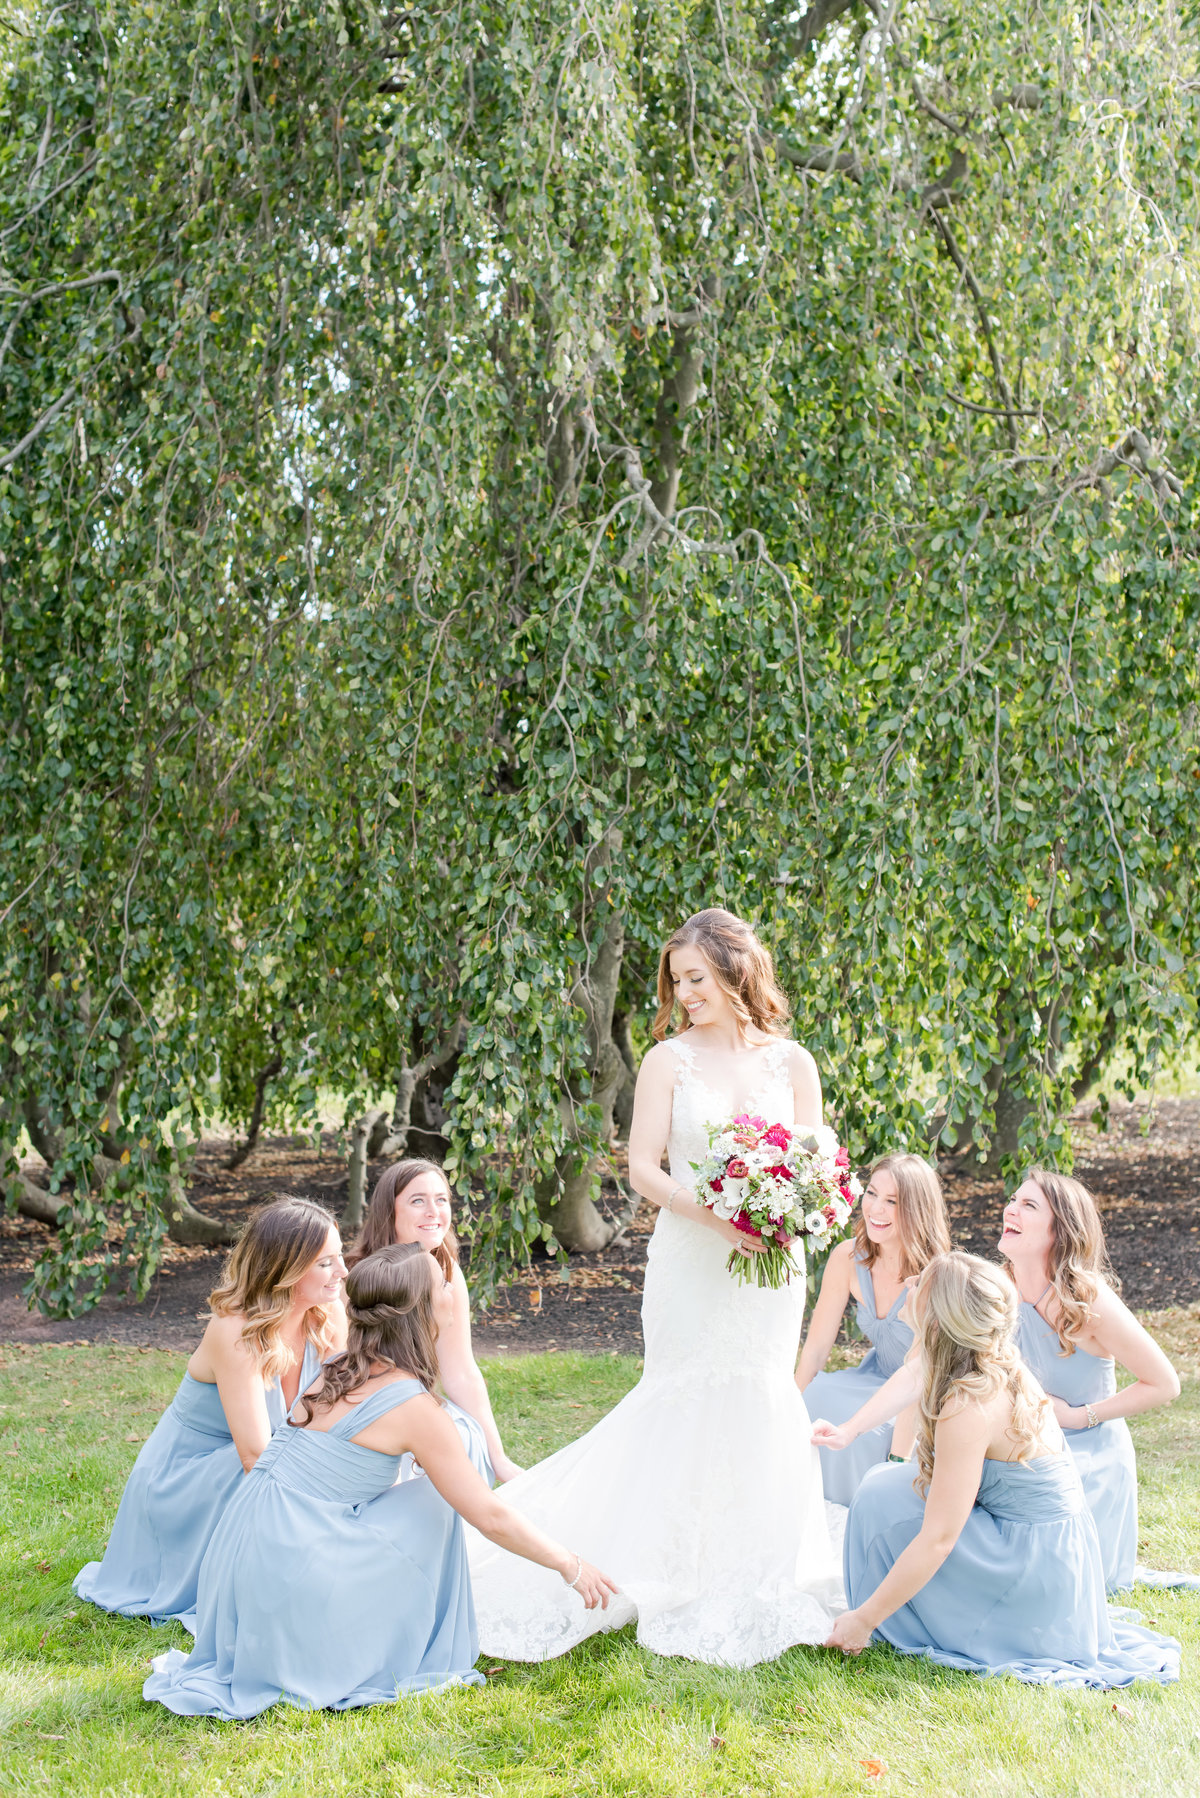 Hamilton Farm Wedding-New Jersey Wedding Photographer-- Jess and Doug Wedding 225251-38